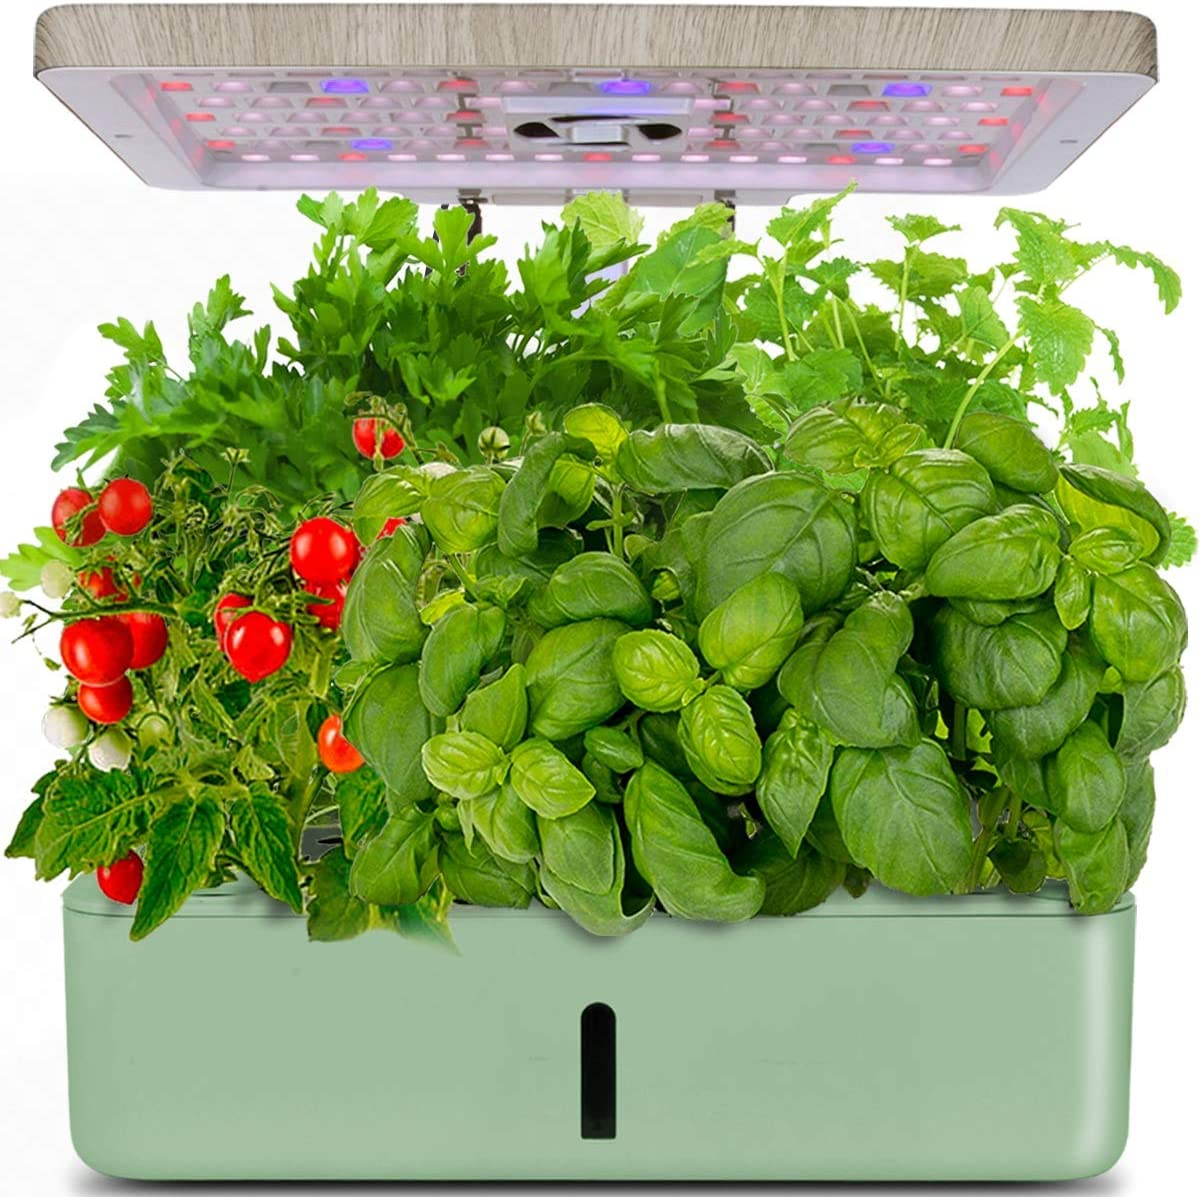 moistenland Indoor Hydroponic Garden, Hydroponics Growing System, Indoor Herb Garden Starter Kit with LED Grow Light, Inside Garden Growing System,Automatic Timer Plant Germination Kits (12 Pods)